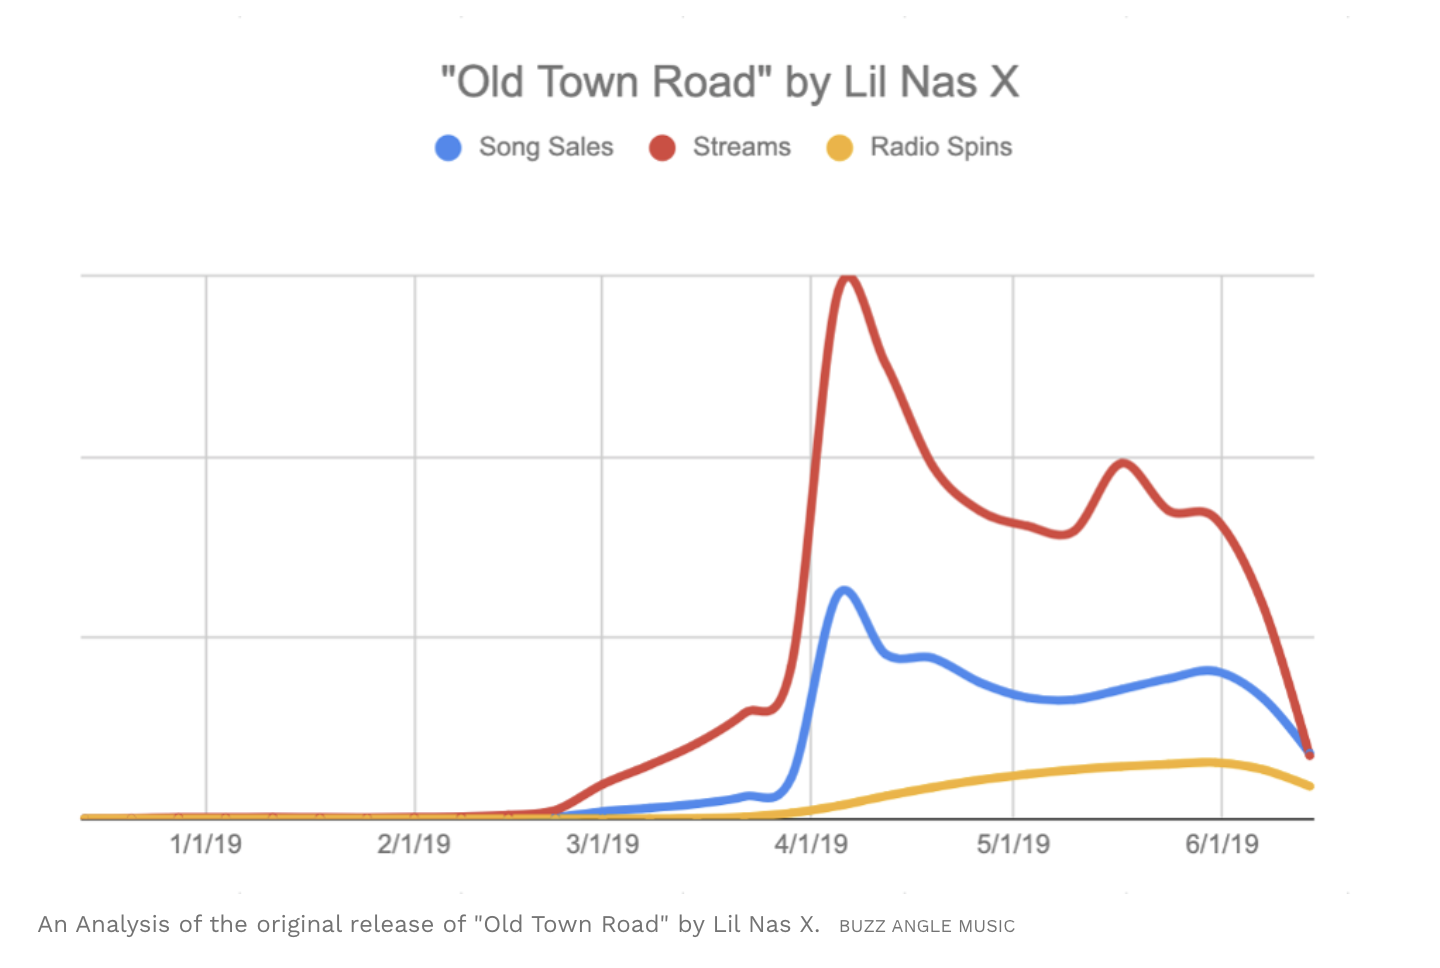 old-town-road-chart.png